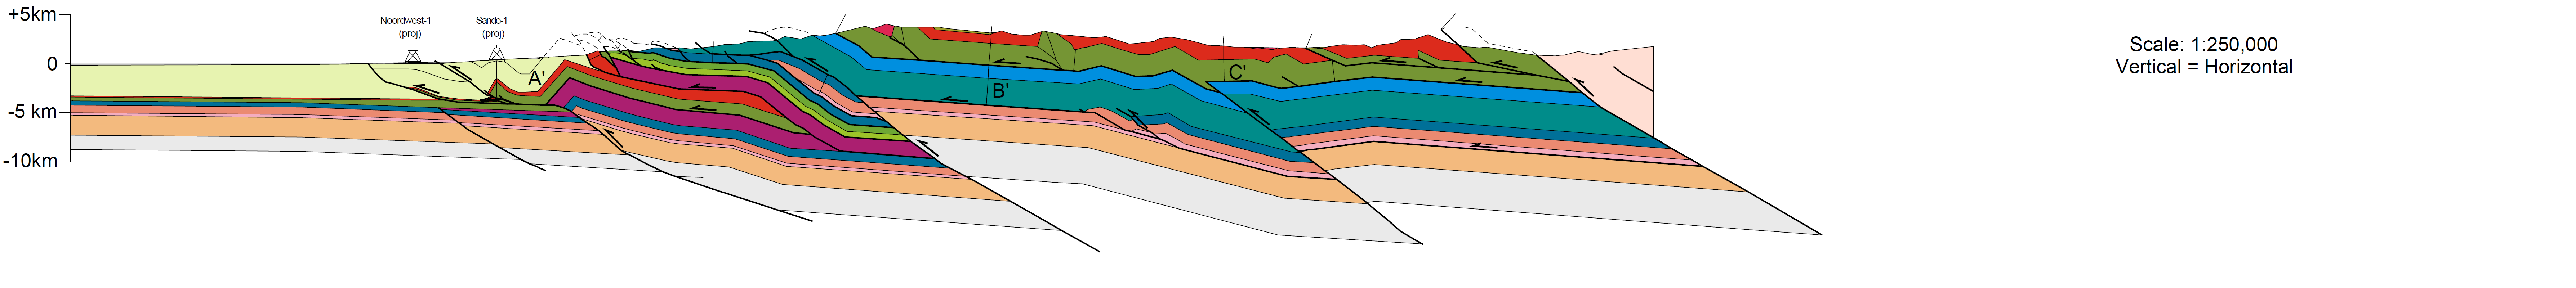 Geology clipart geophysics. Energeo services crosssection of